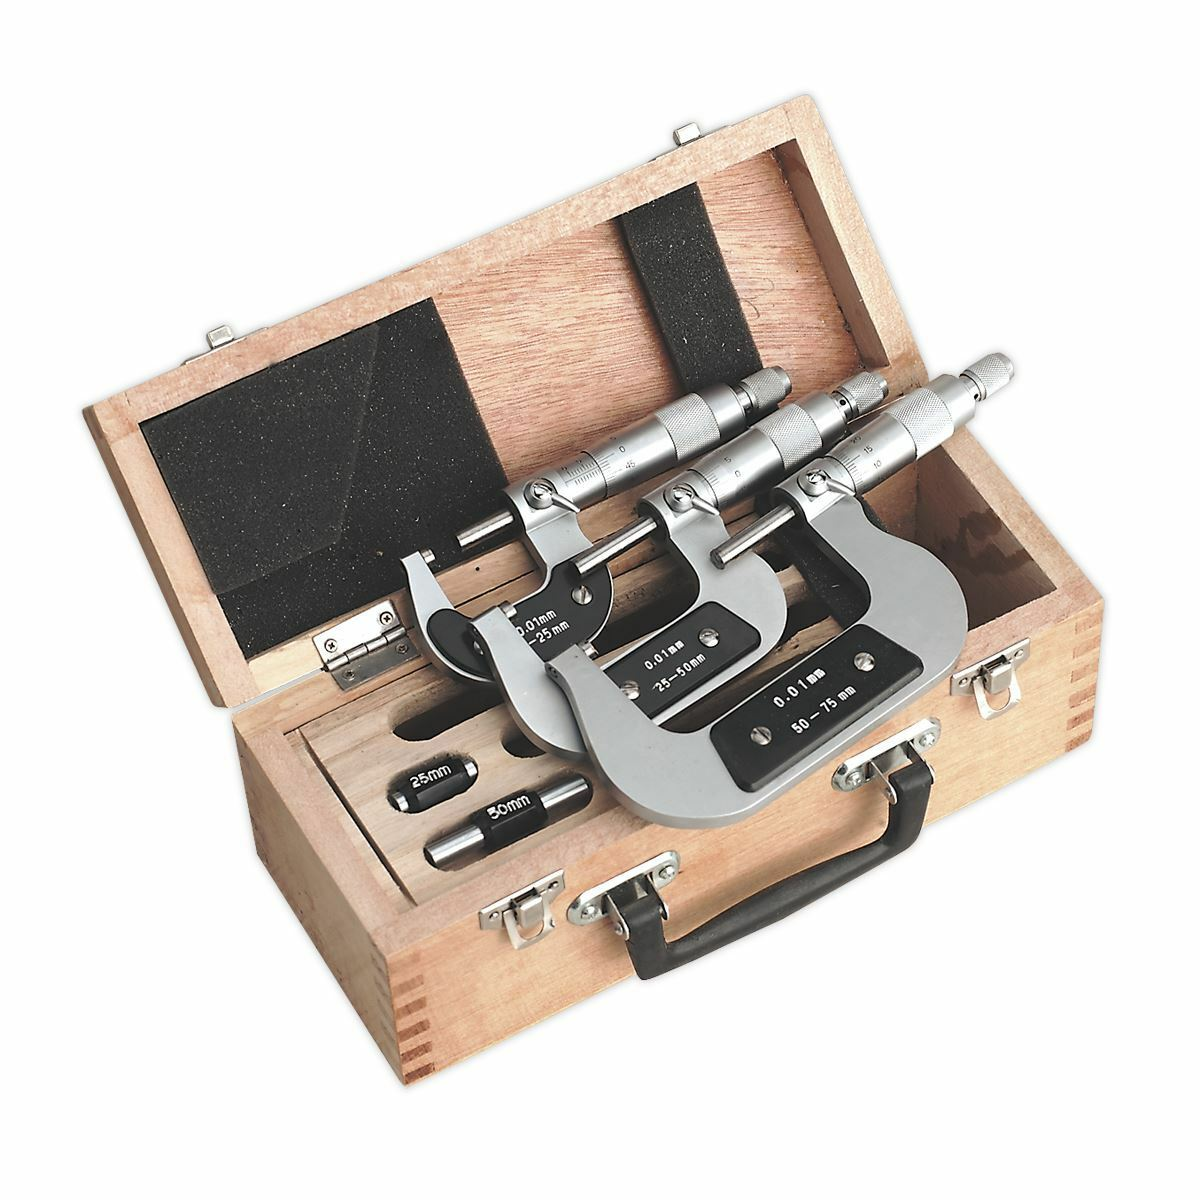 Sealey AK9651M Micrometer Set 3pc Metric